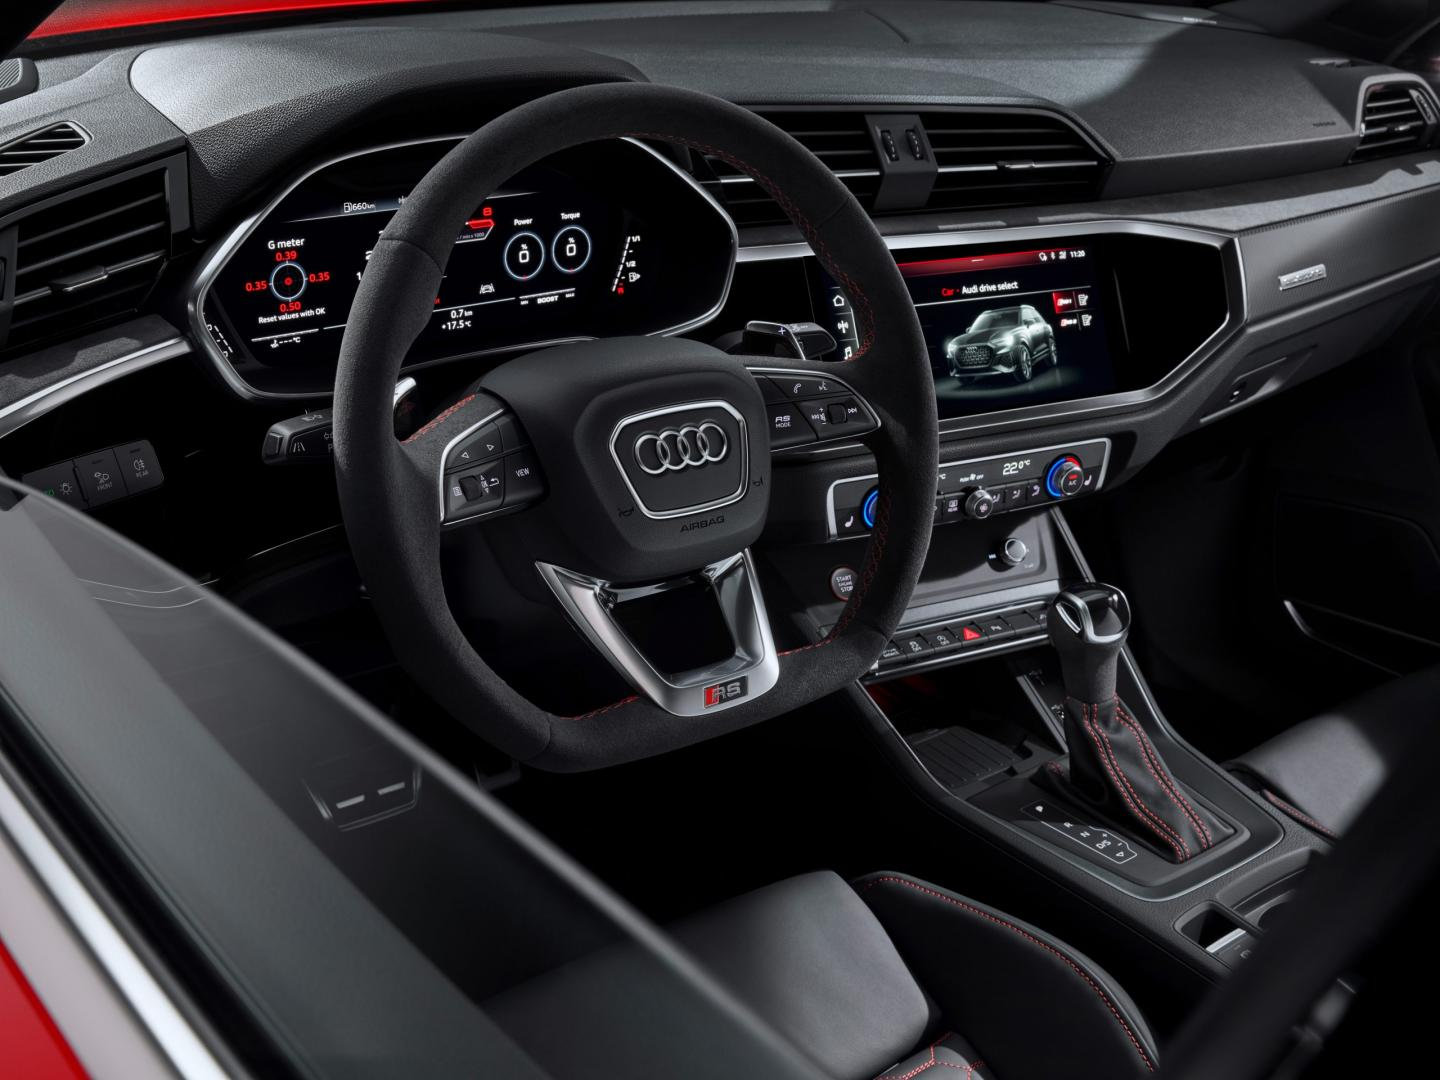 Audi RS Q3 dashboard interieur stuur